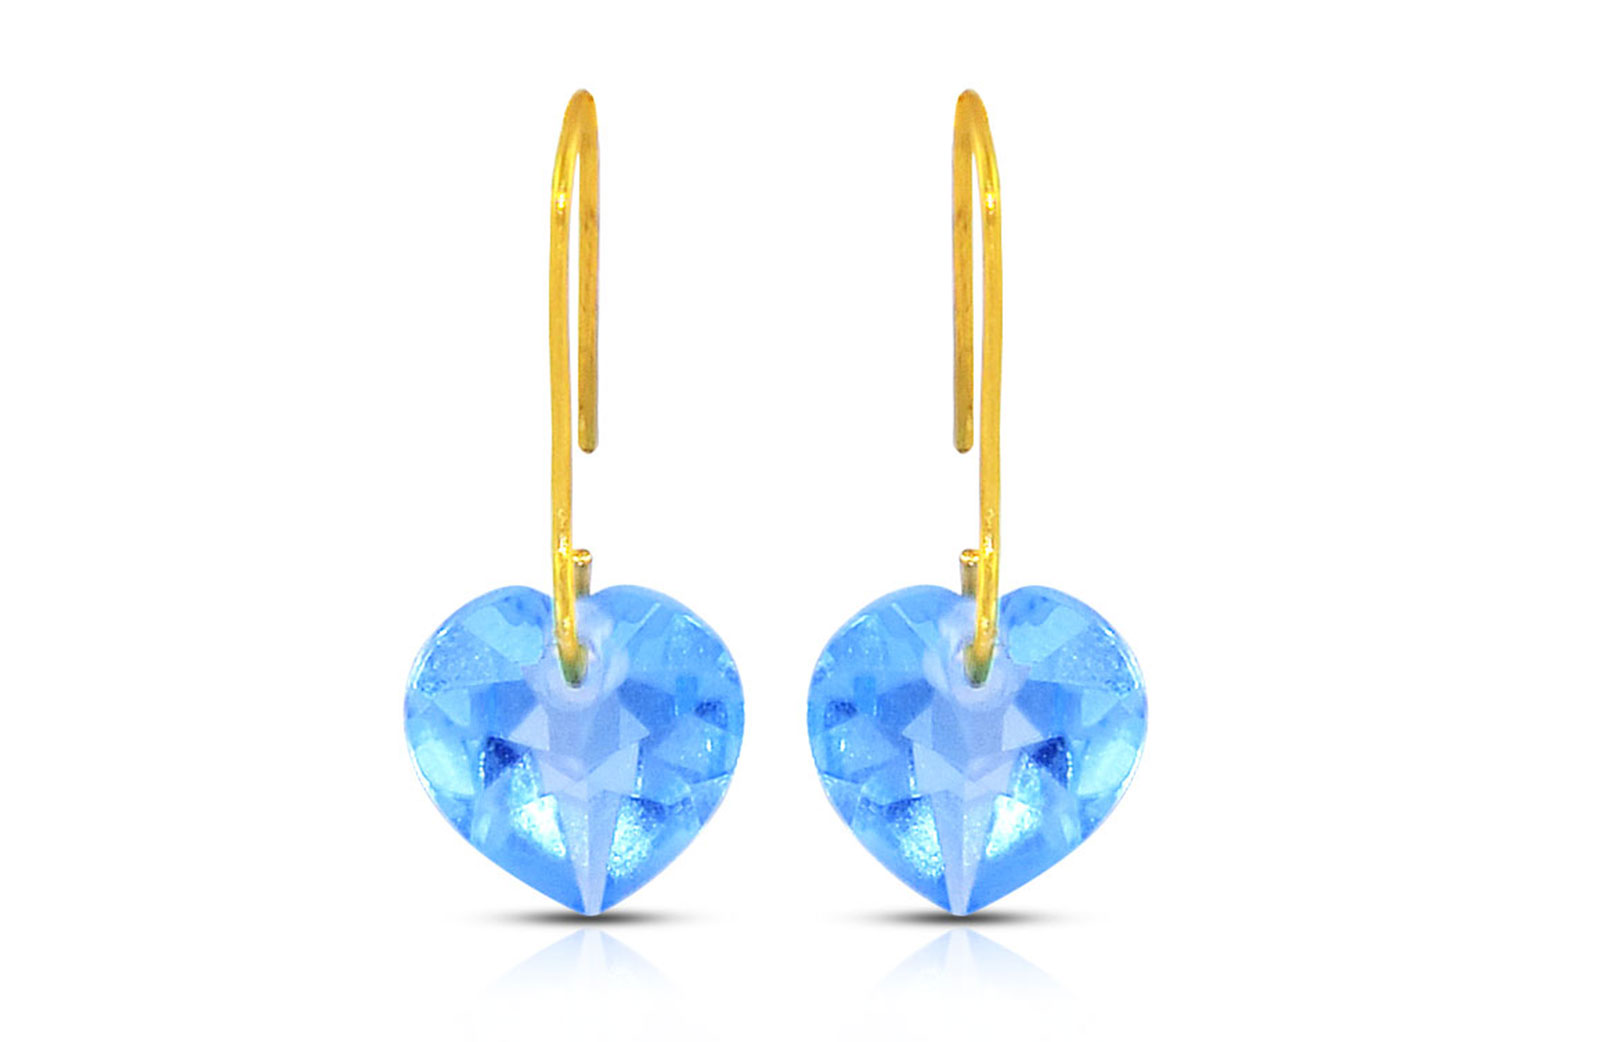 Vera Perla 18K Gold Genuine Swiss Blue Topaz 7mm Heart Earrings